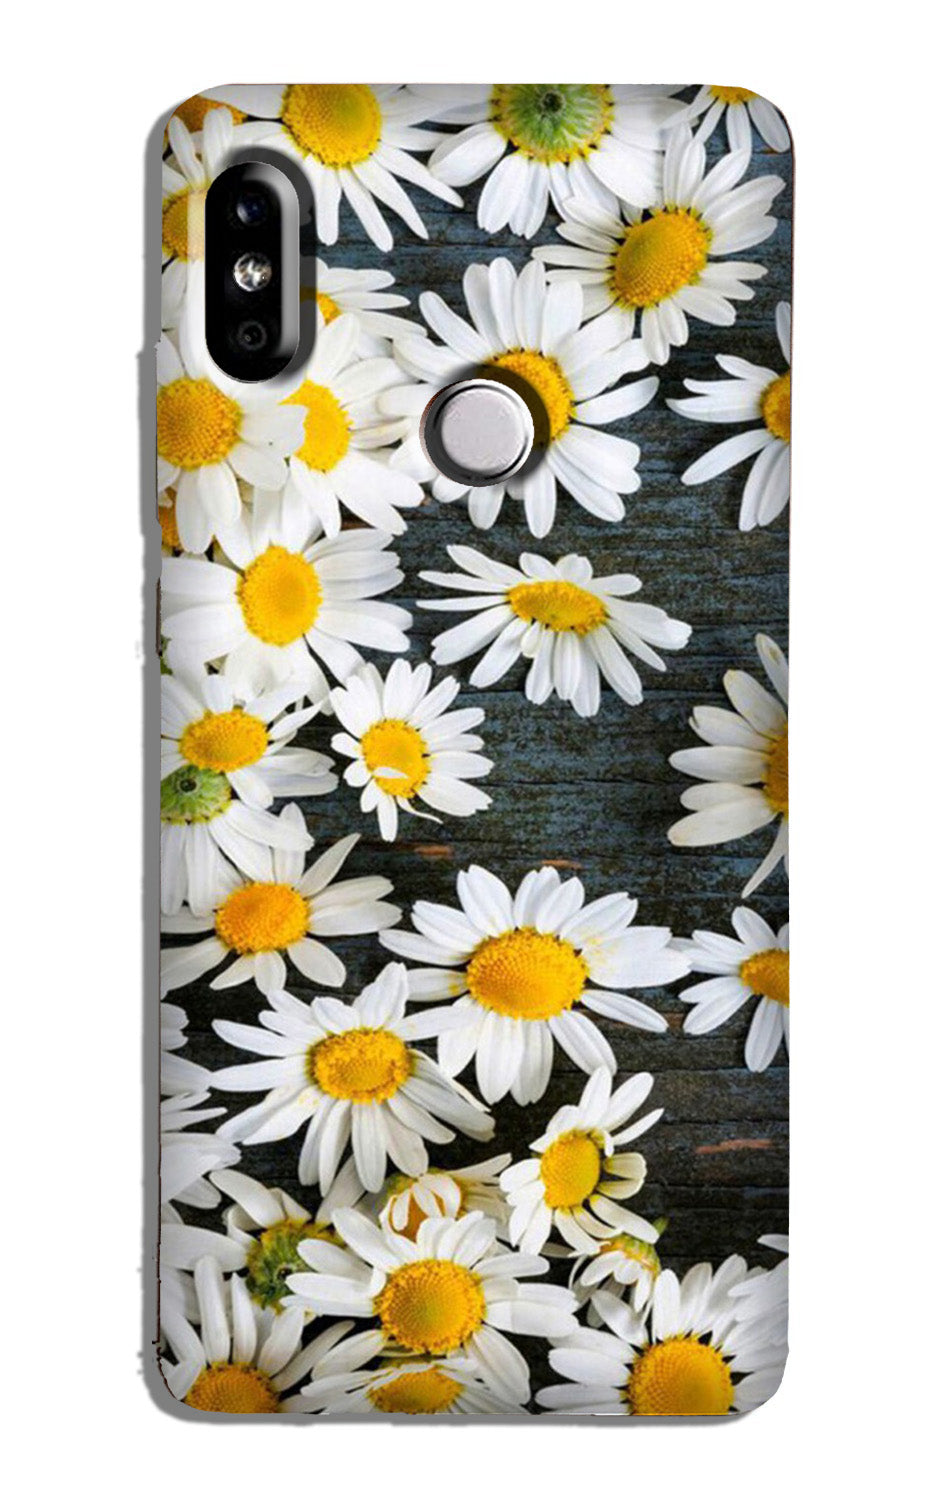 White flowers Case for Redmi 6 Pro